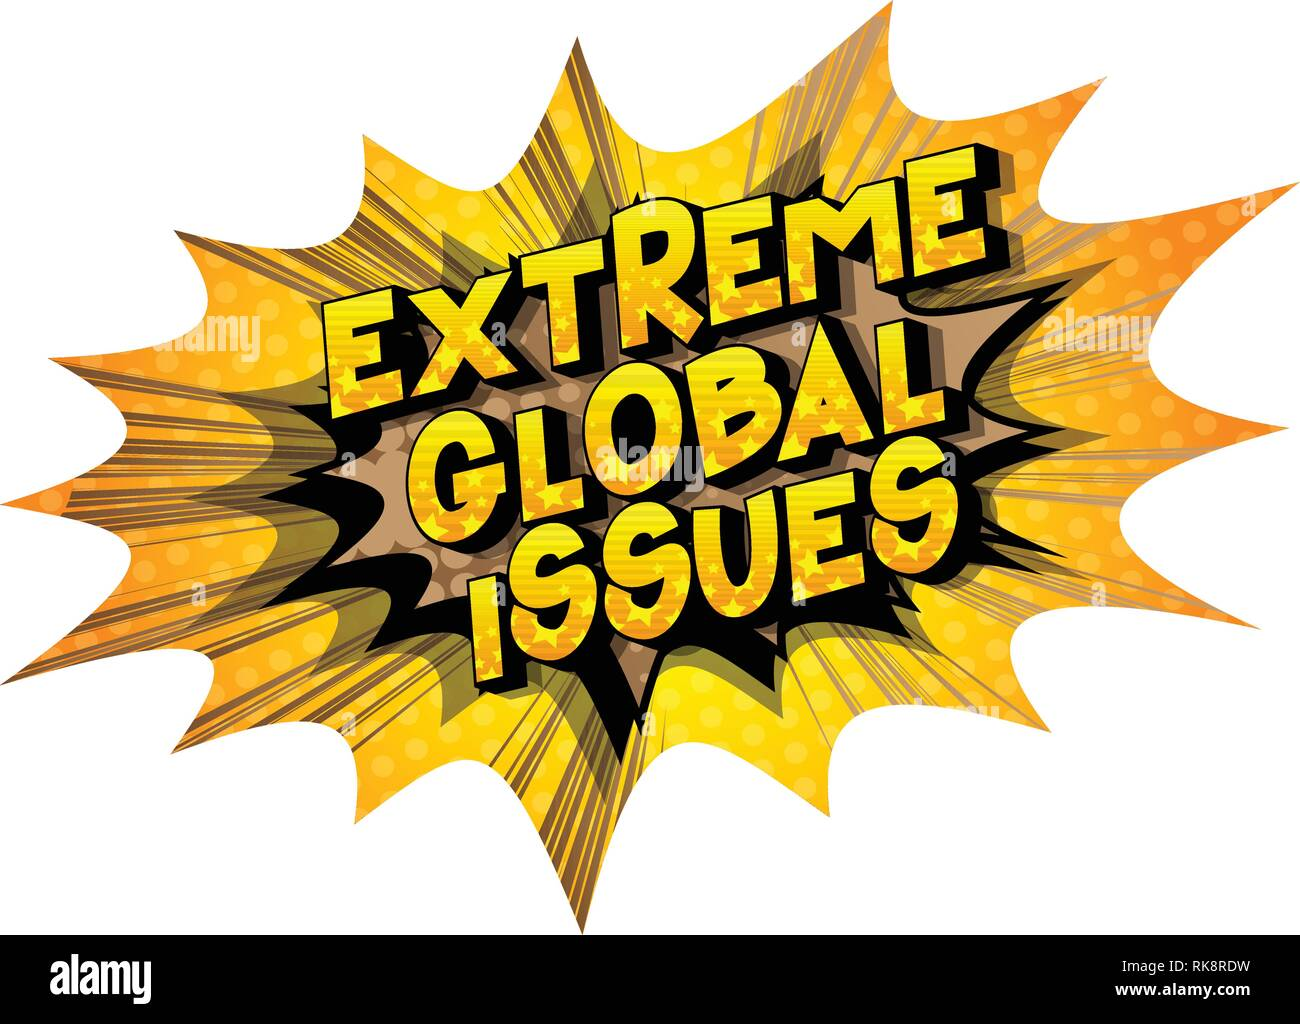 Extreme Global Issues - Vector illustrated comic book style phrase on abstract background. - Stock Vector